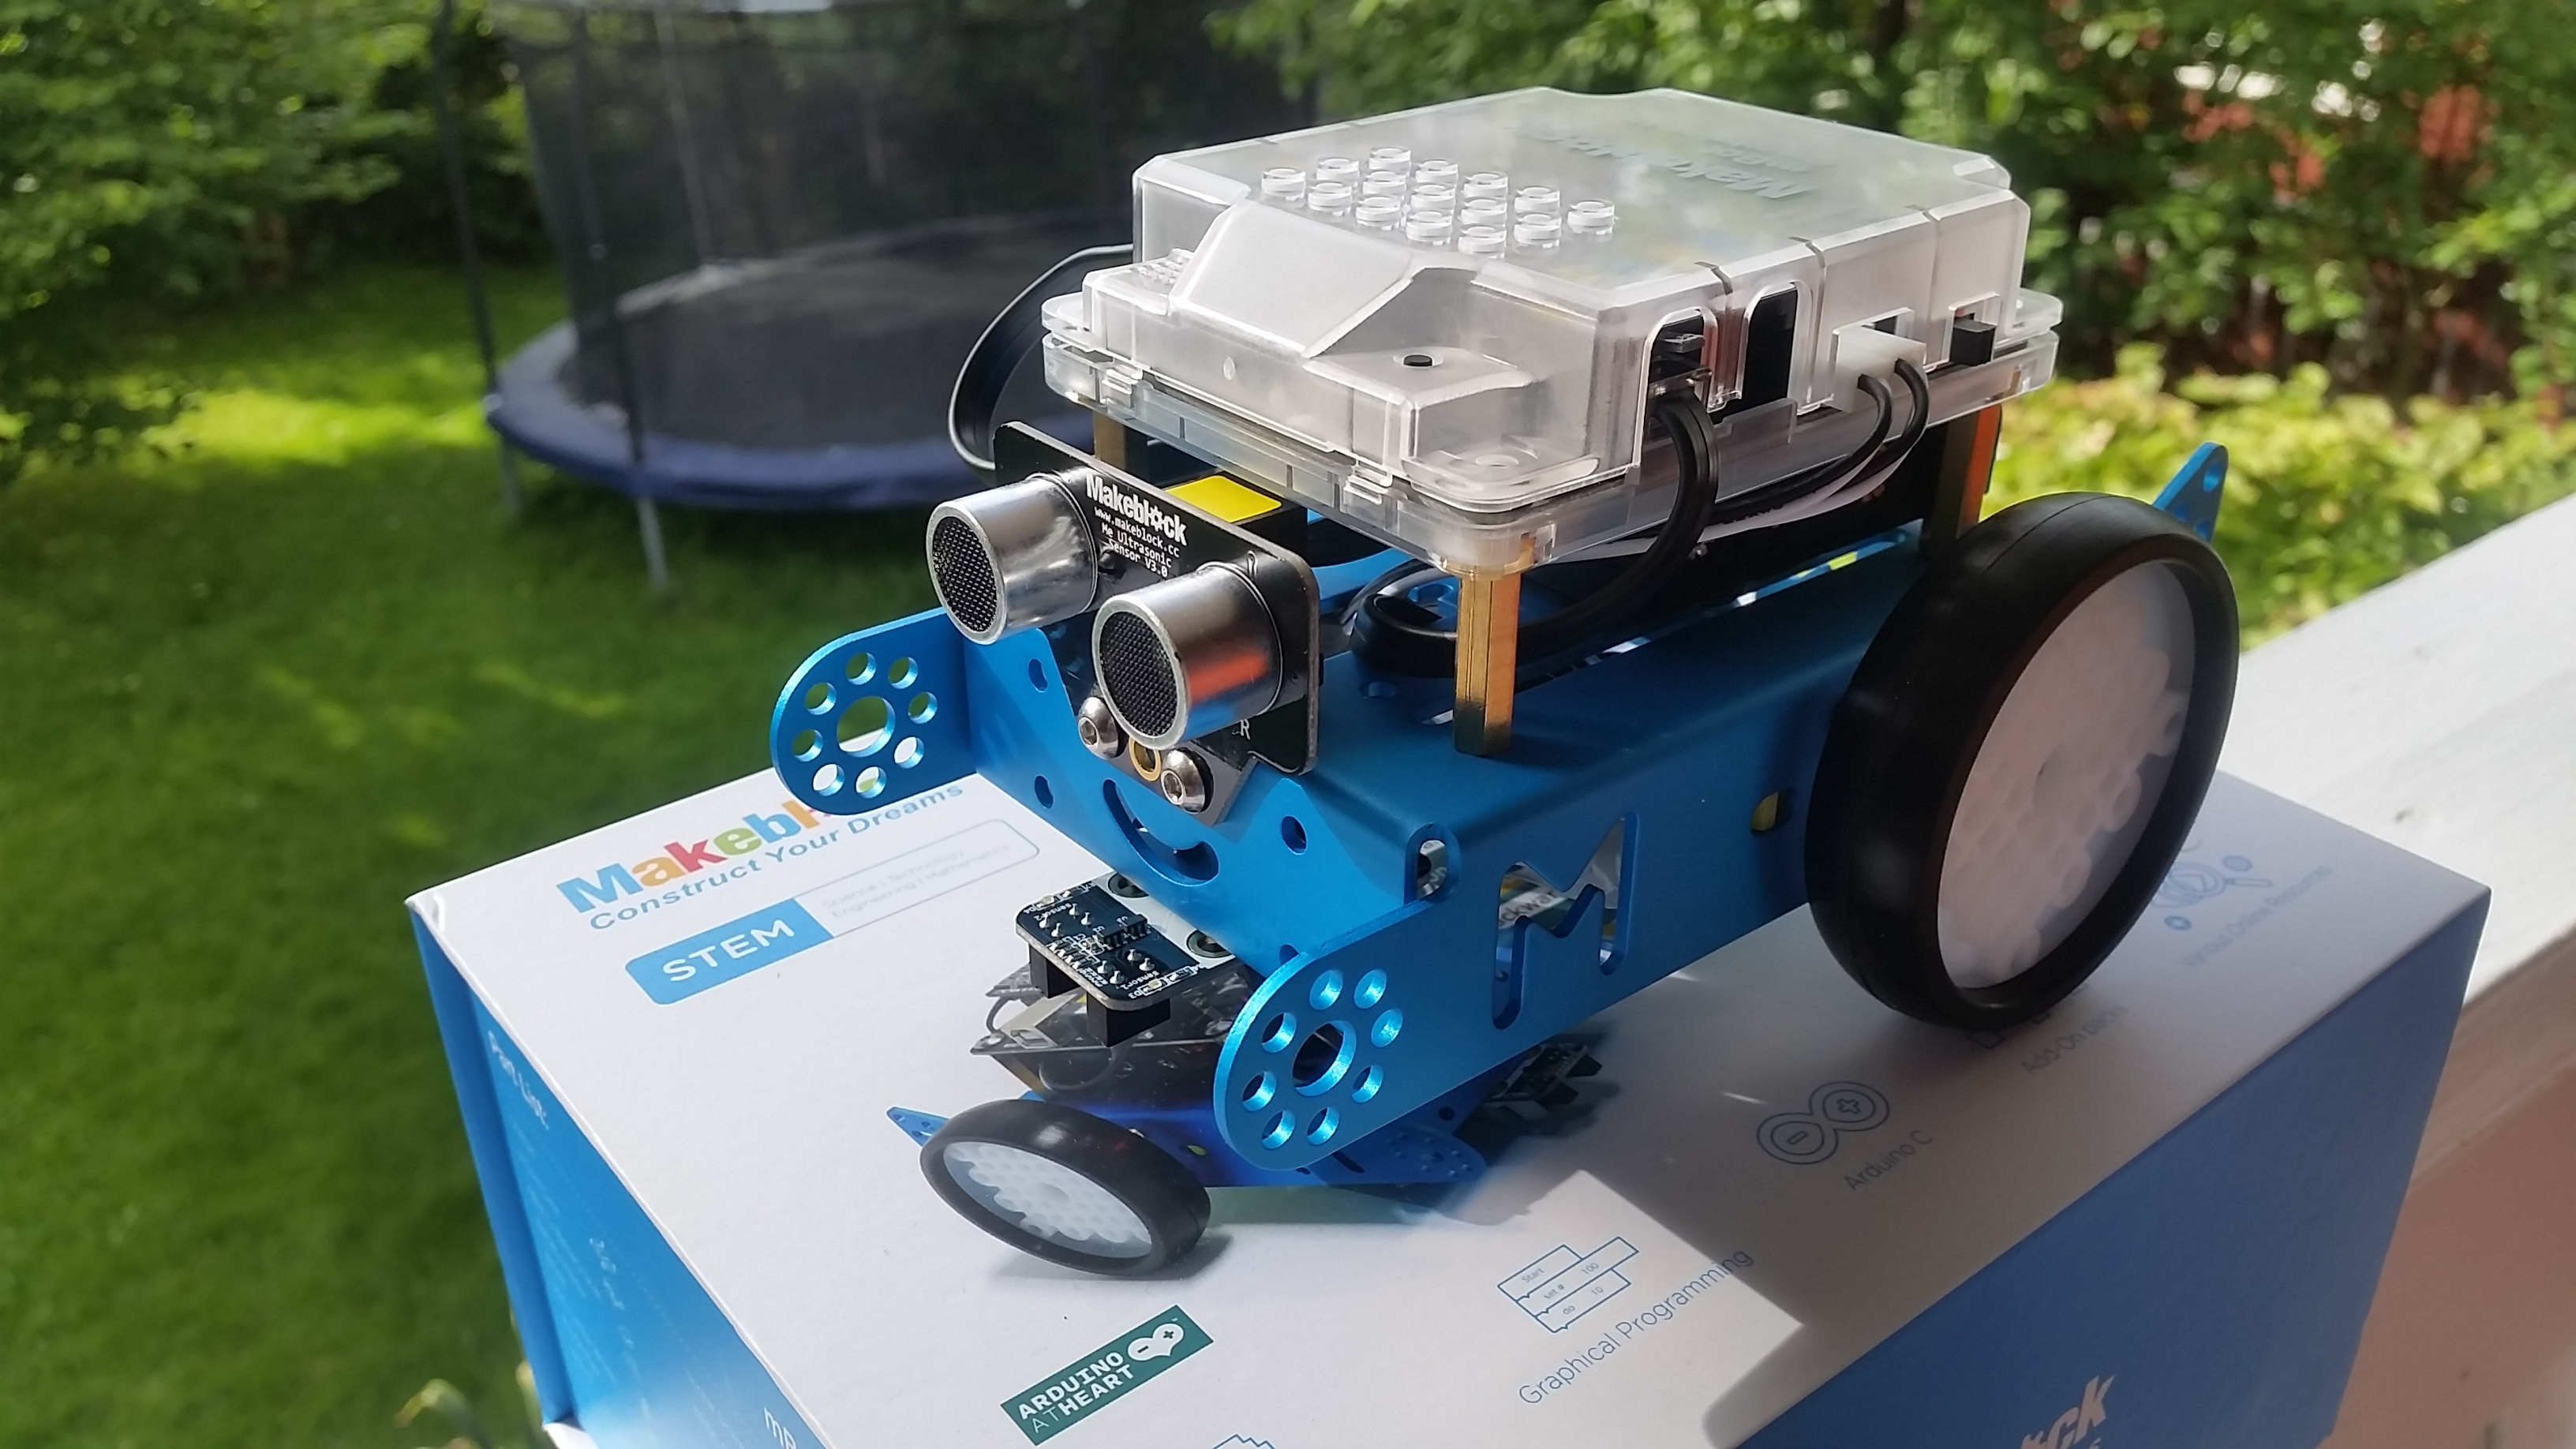 Article image for Makeblock mBot review